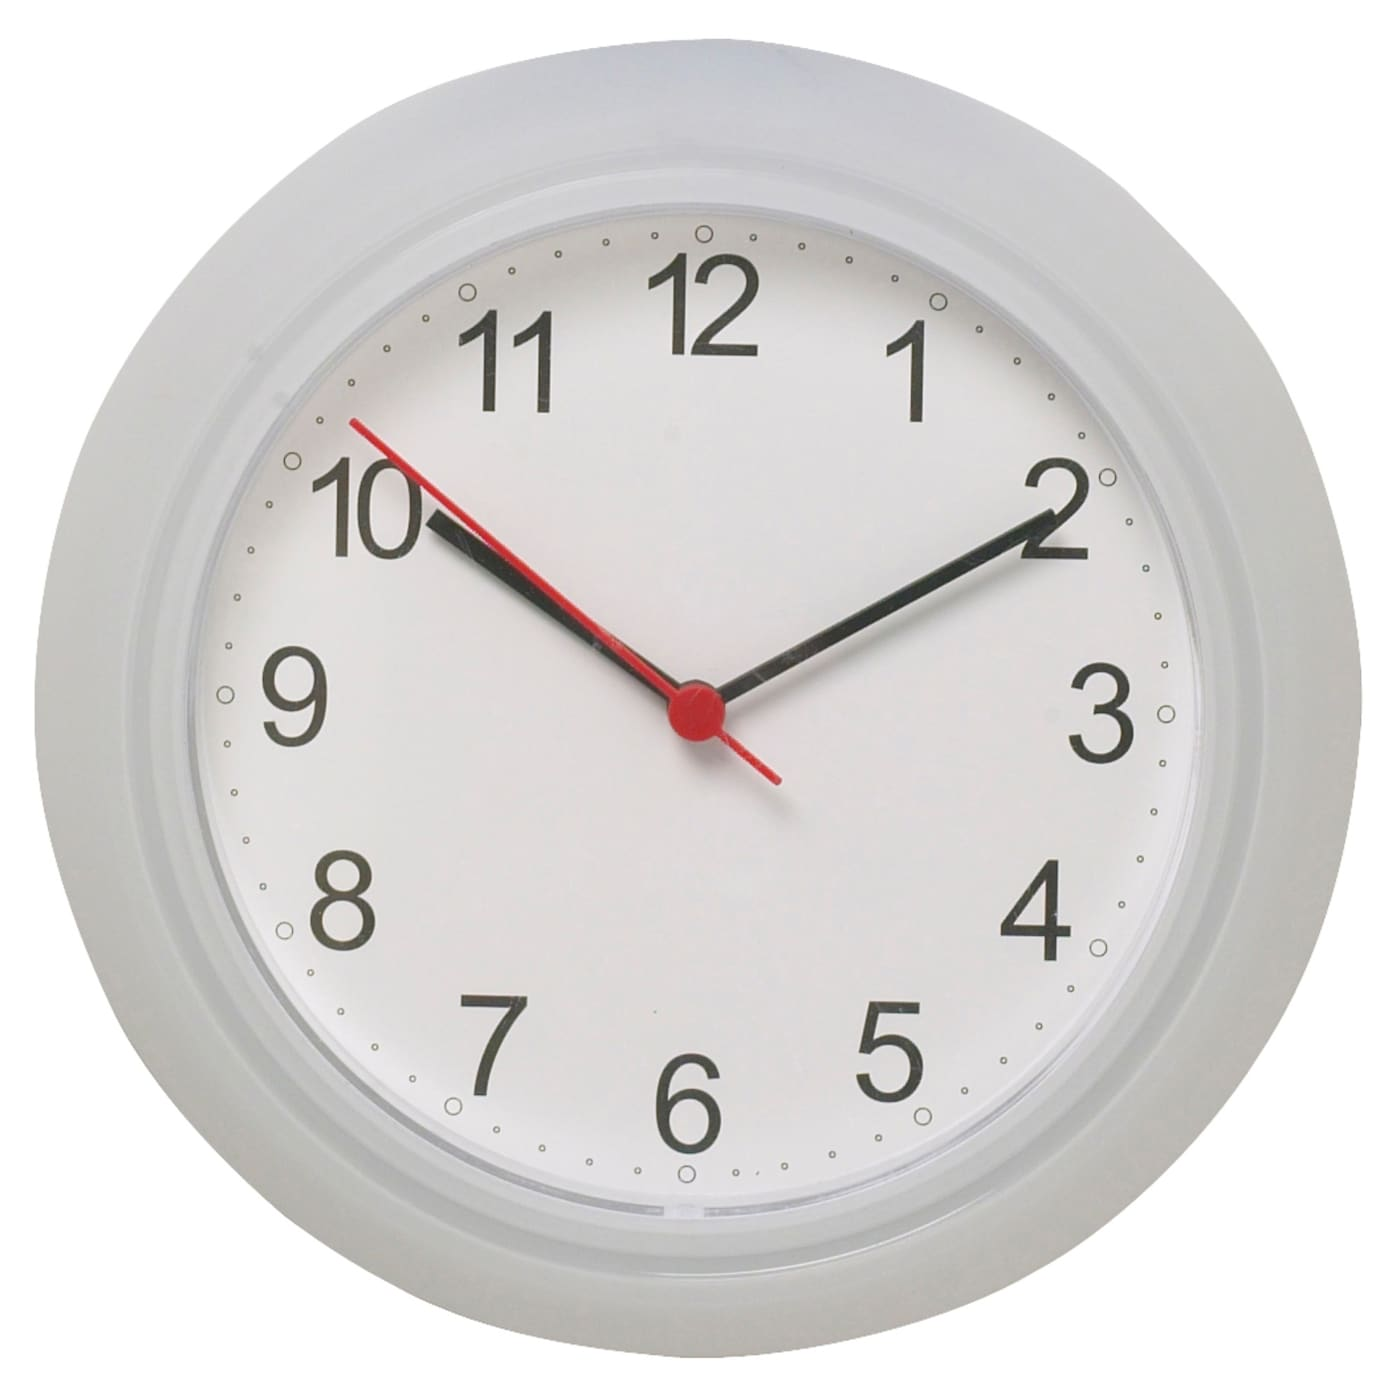 Clocks for bathroom wall - Ikea Rusch Wall Clock Highly Accurate At Keeping Time As It Is Fitted With A Quartz